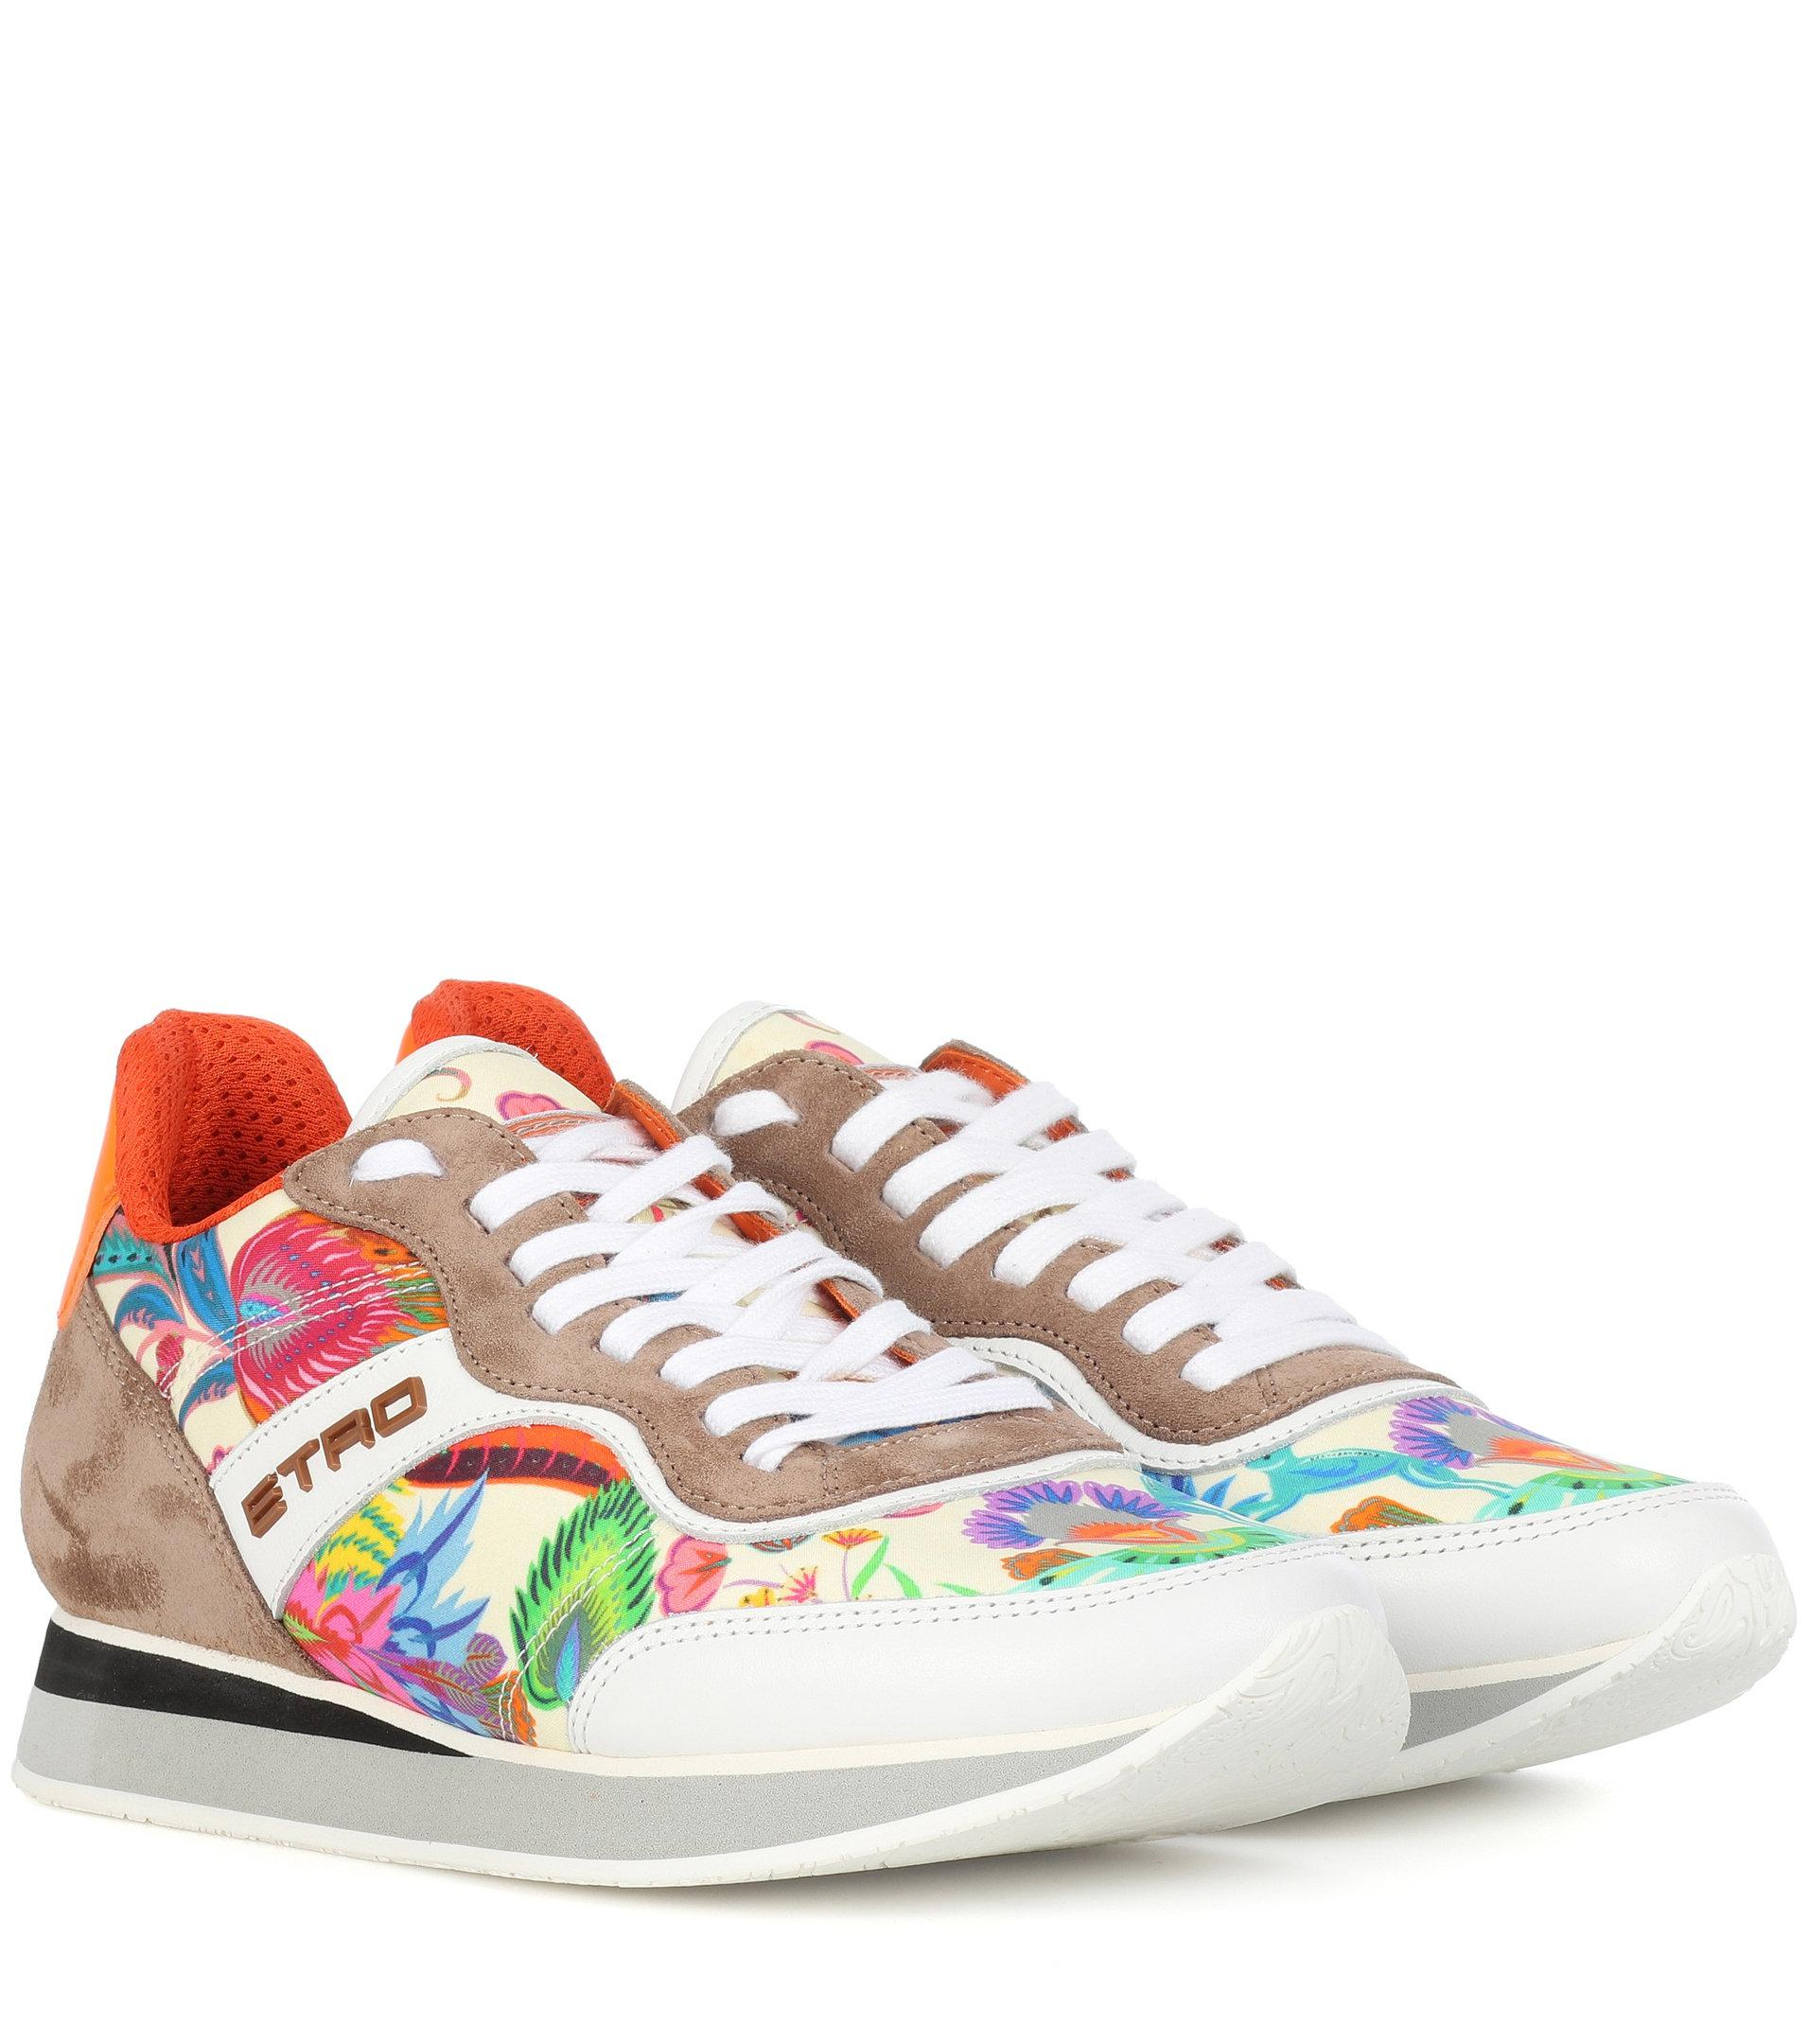 Printed leather sneakers Etro ZFHJC7B